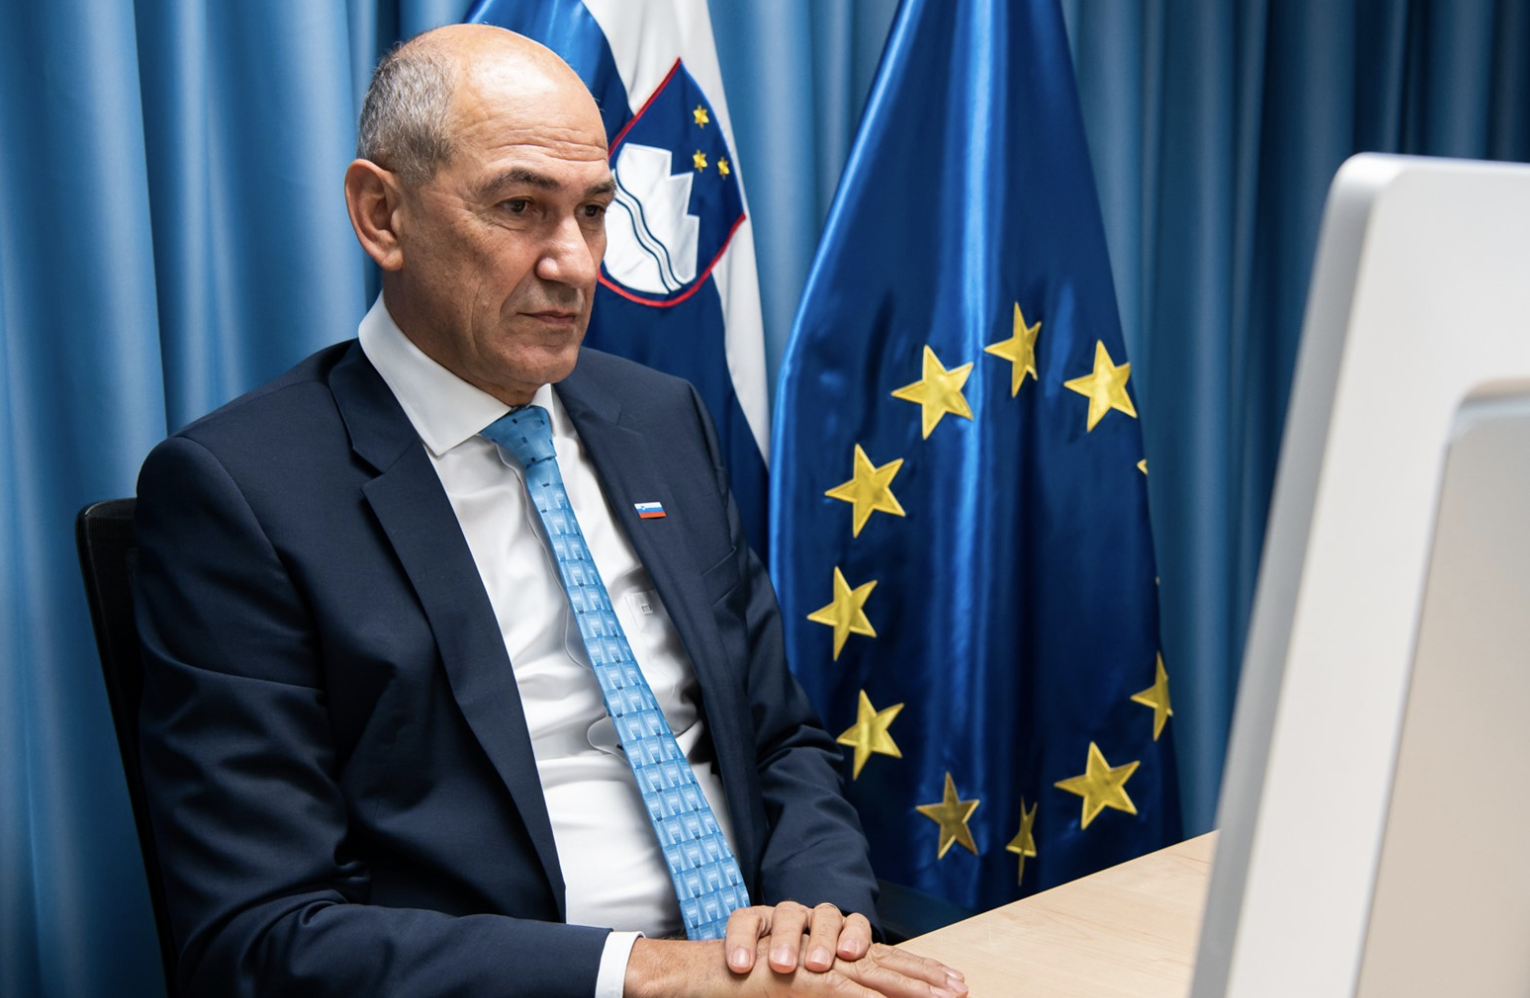 Janša attends plenary session of the European Committee of the Regions